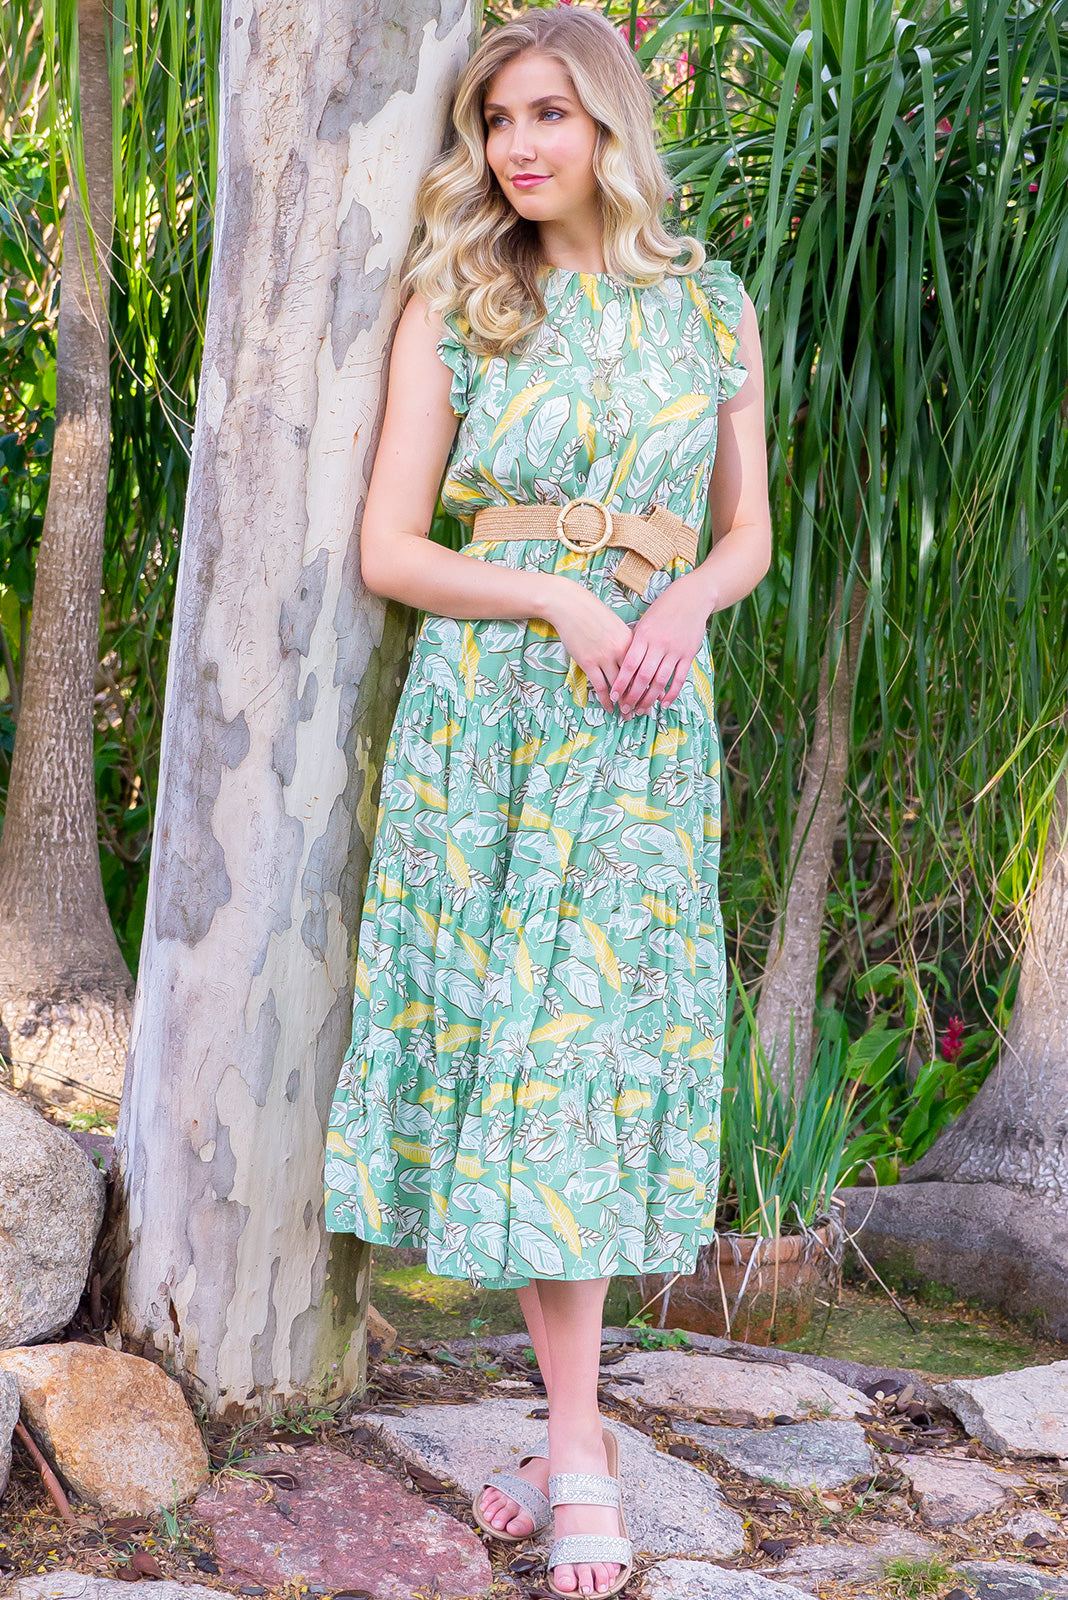 Jasmine Green Fern Maxi Dress in green and gold 100% rayon fabric. Tiered skirt, complimentary belt, frill short sleeves, high neck and side pockets.